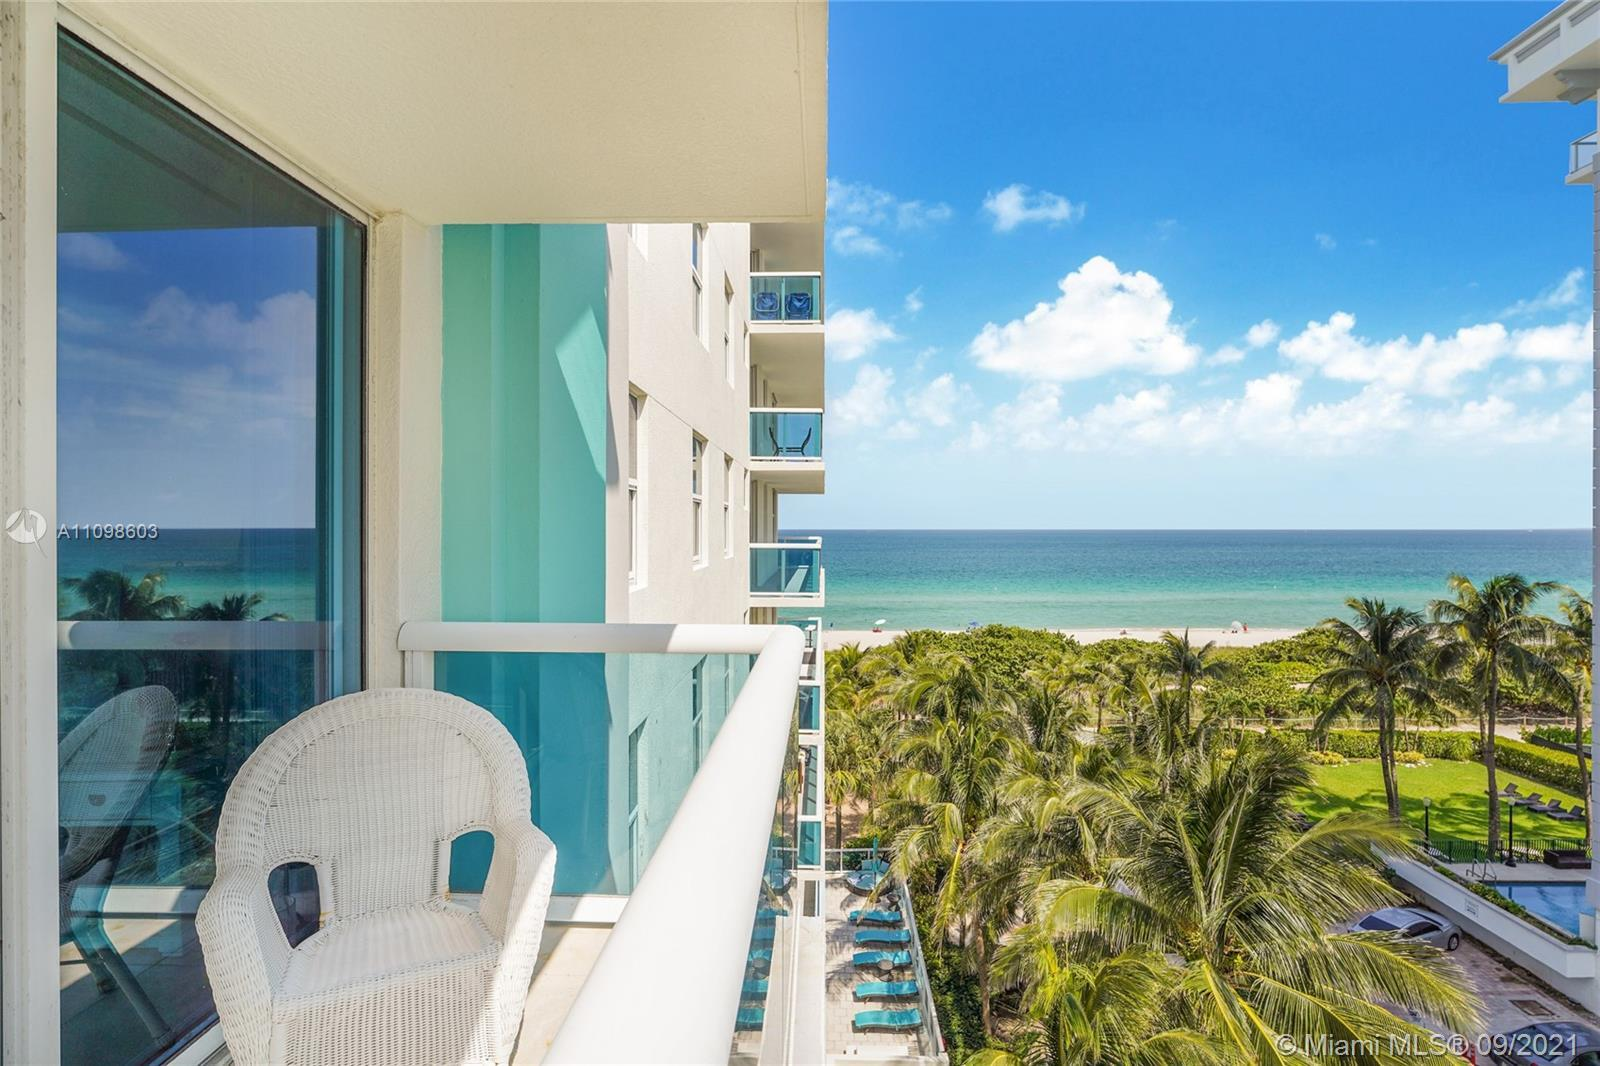 OCEAN FRONT!! Exclusive BOUTIQUE BLDG. Beautiful 2 beds 2 baths fully renovated four years ago with